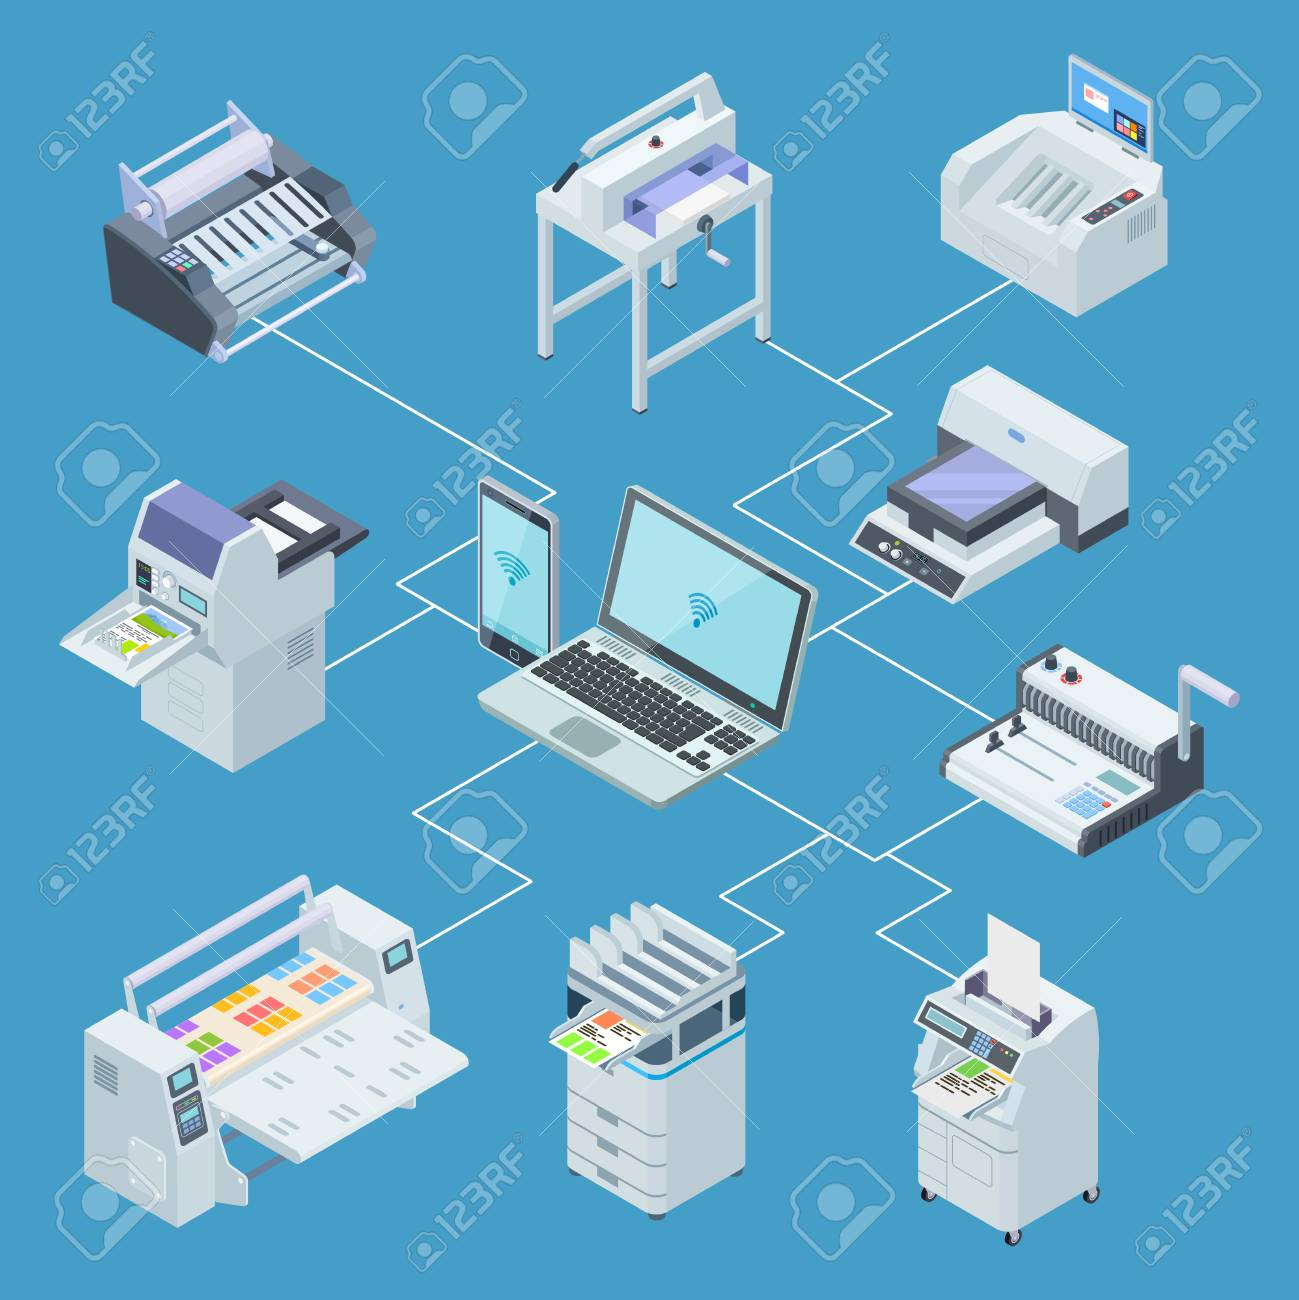 Modern printing house equipment. Printer plotter, offset cutting machines isometric vector concept. Illustration of control processing from laptop, scanning and plotter - 115946997